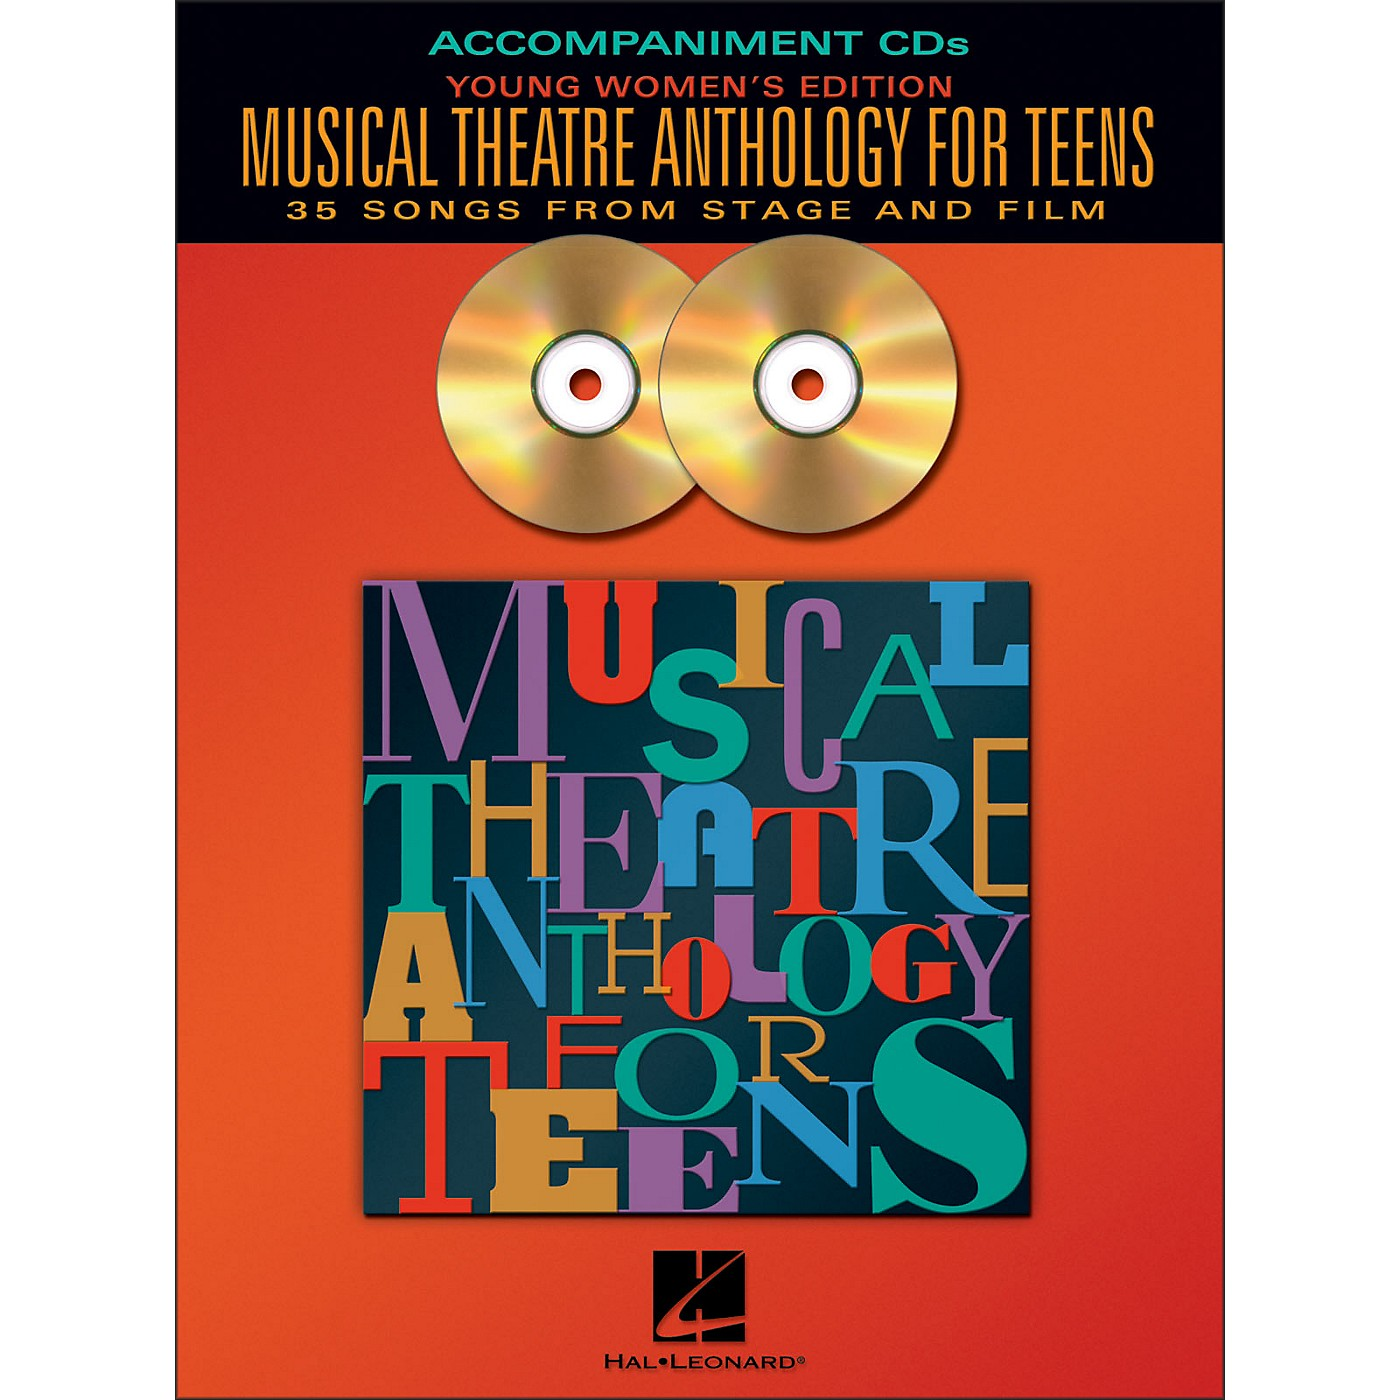 Hal Leonard Musical Theatre Anthology for Teens - Young Women's Edition  2CD Accompaniment thumbnail